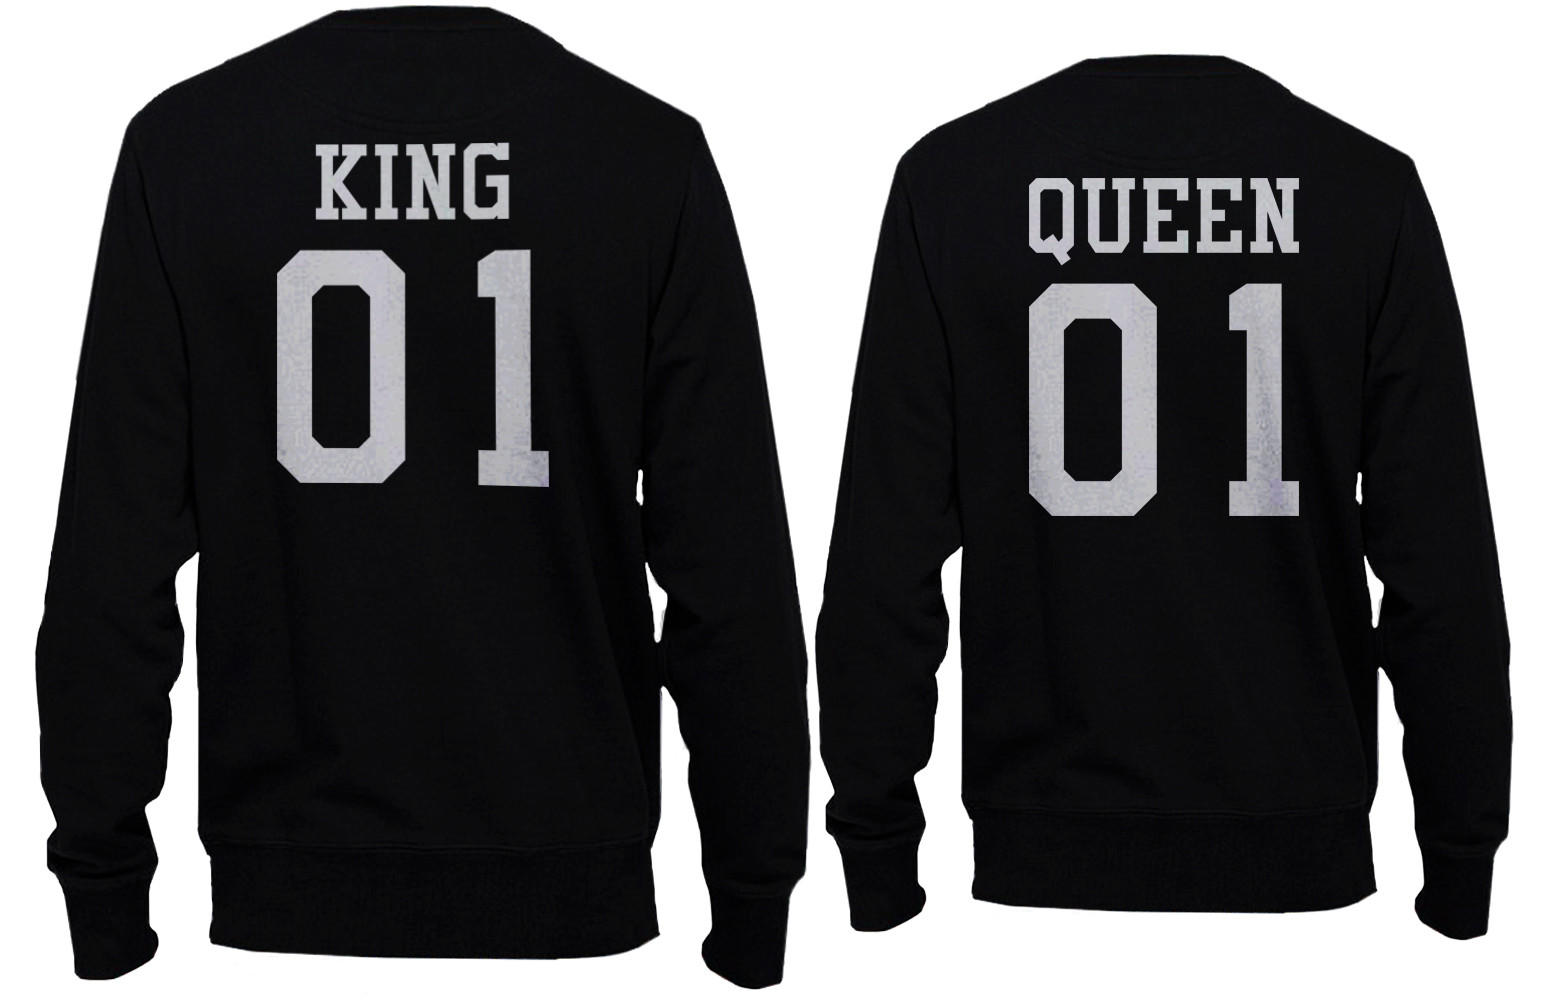 king and queen couple sweaters. Black Bedroom Furniture Sets. Home Design Ideas